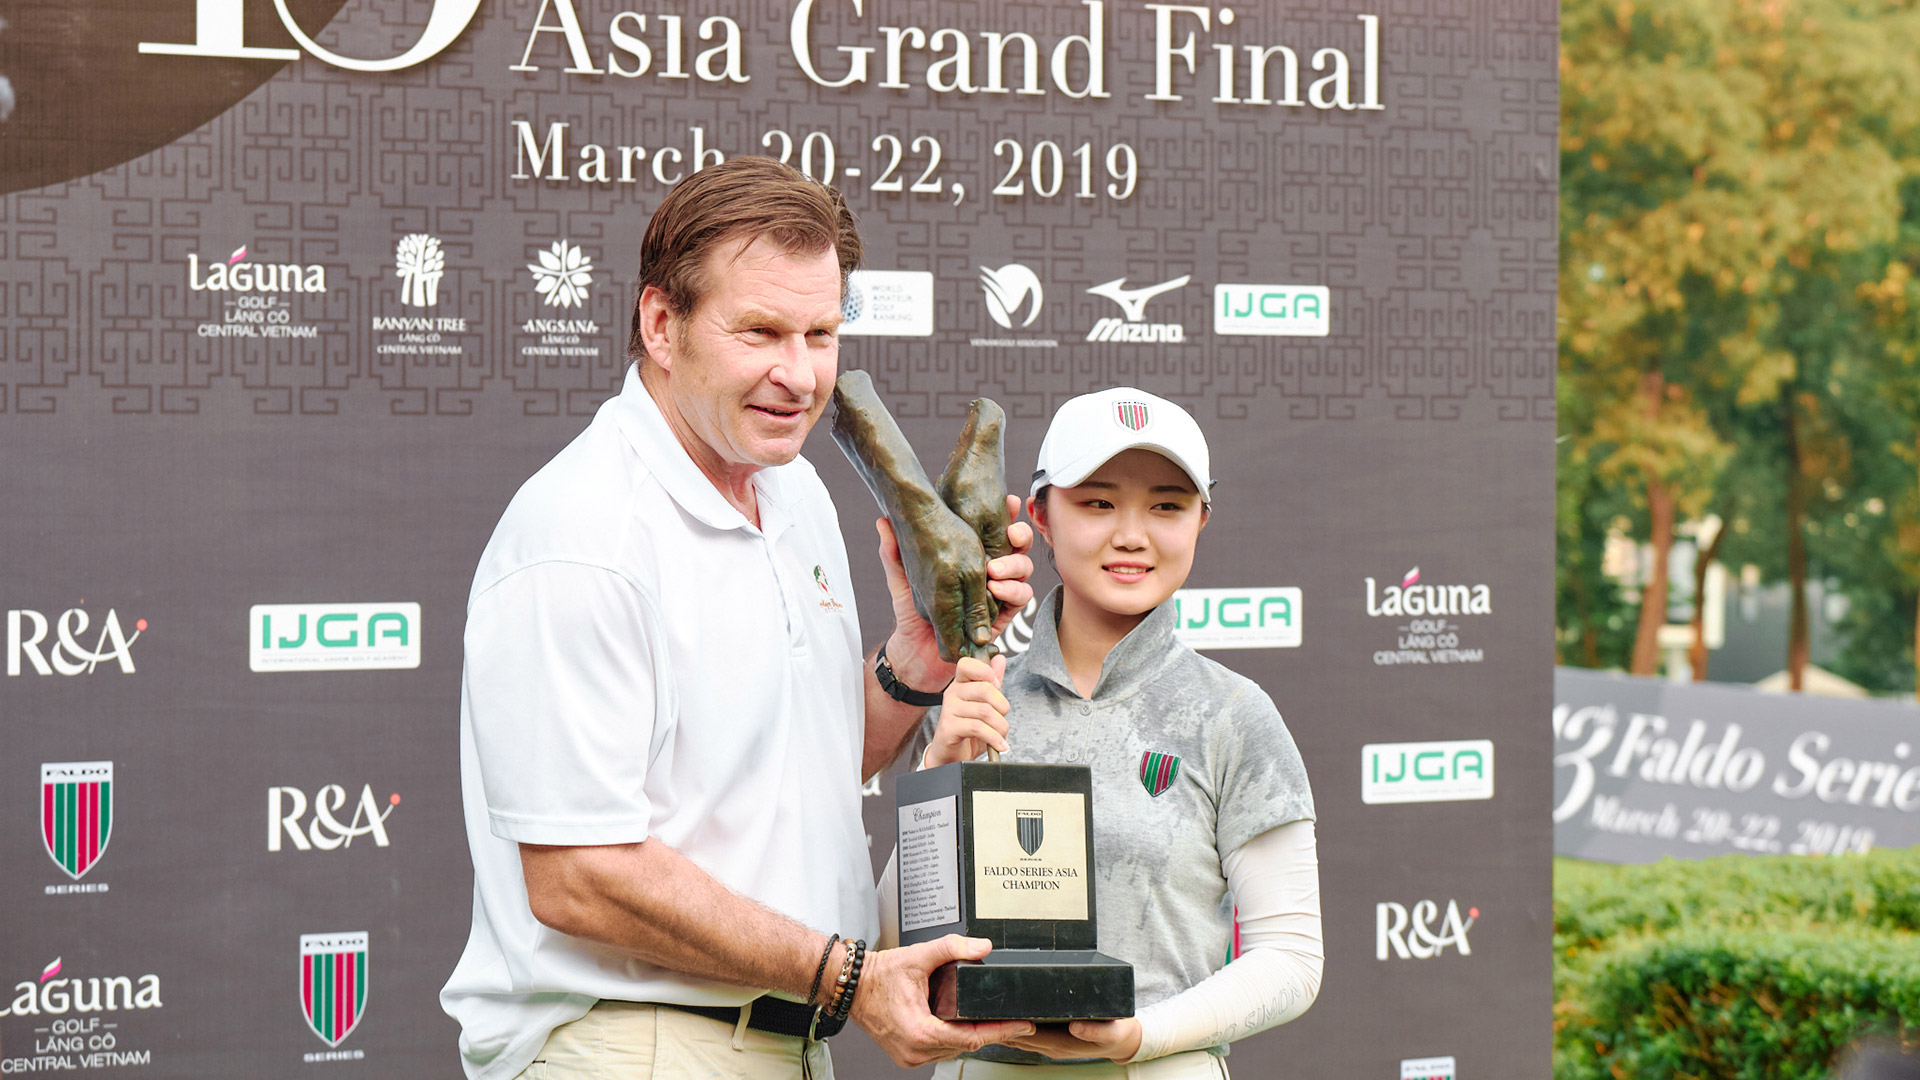 13th Faldo Series Asia Grand Final